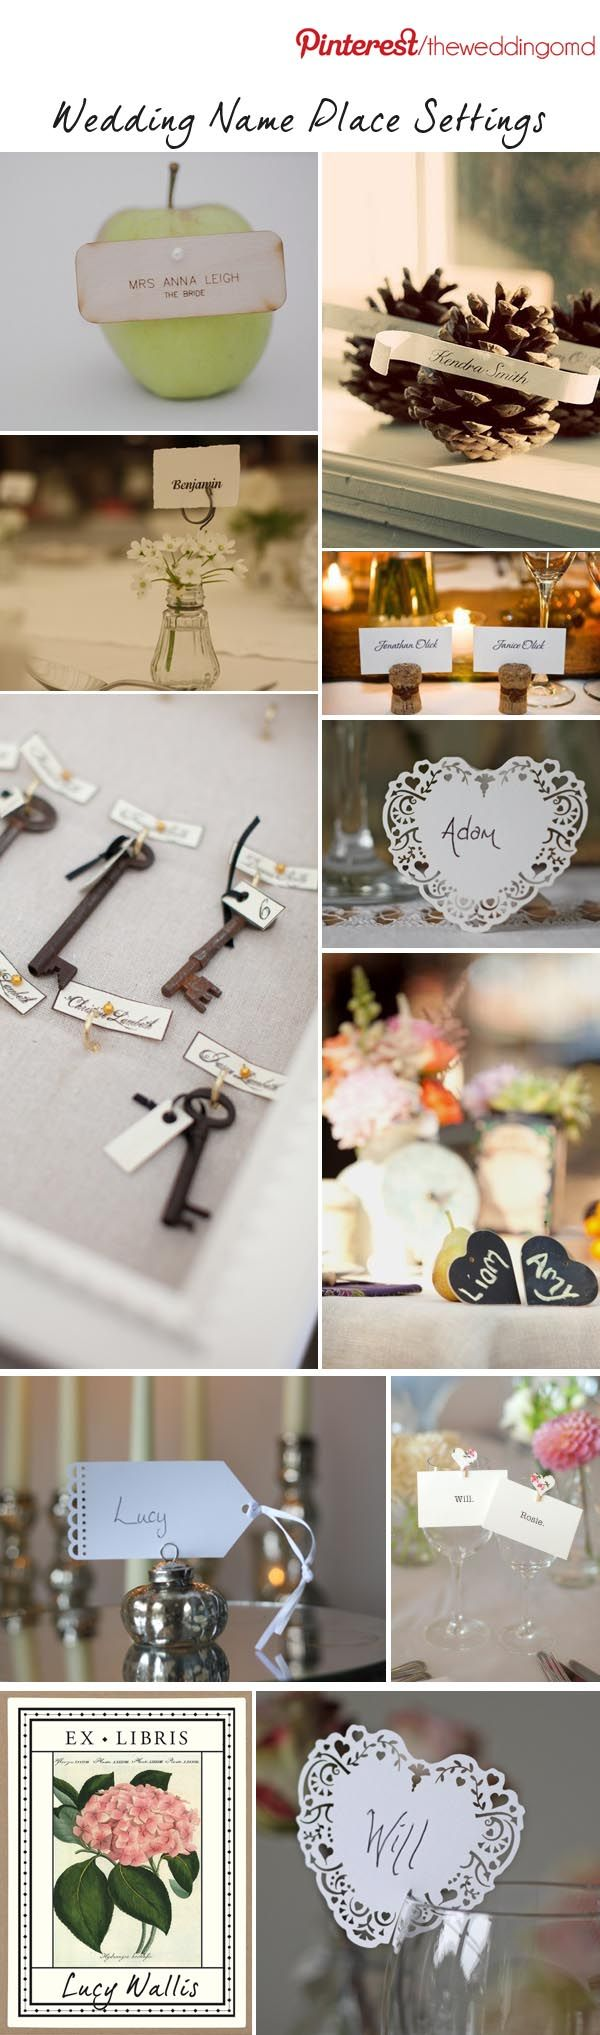 silver heart wedding place card holders%0A Wedding Name Card Ideas   Follow Us On Pinterest For Wedding Inspiration